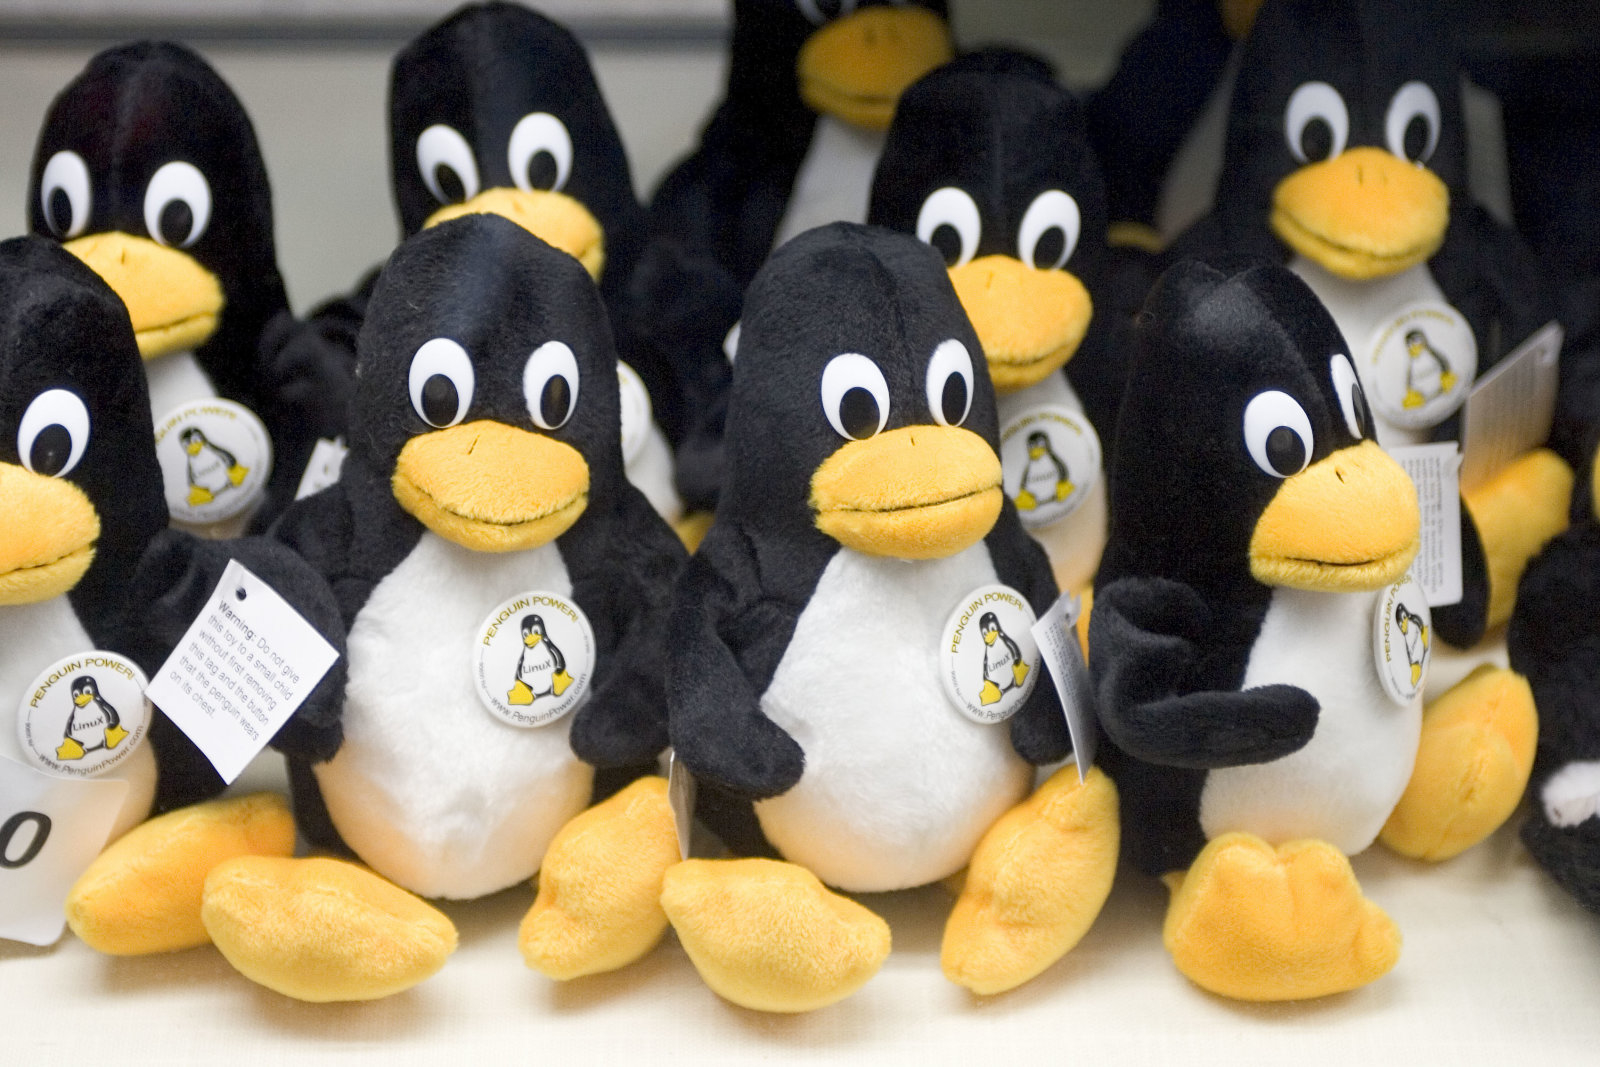 Tiny Linux penguins are seen for sale at the 2004 Linuxworld Conference and Expo at the Moscone Center in San Francisco. (Photo by Kim Kulish/Corbis via Getty Images)